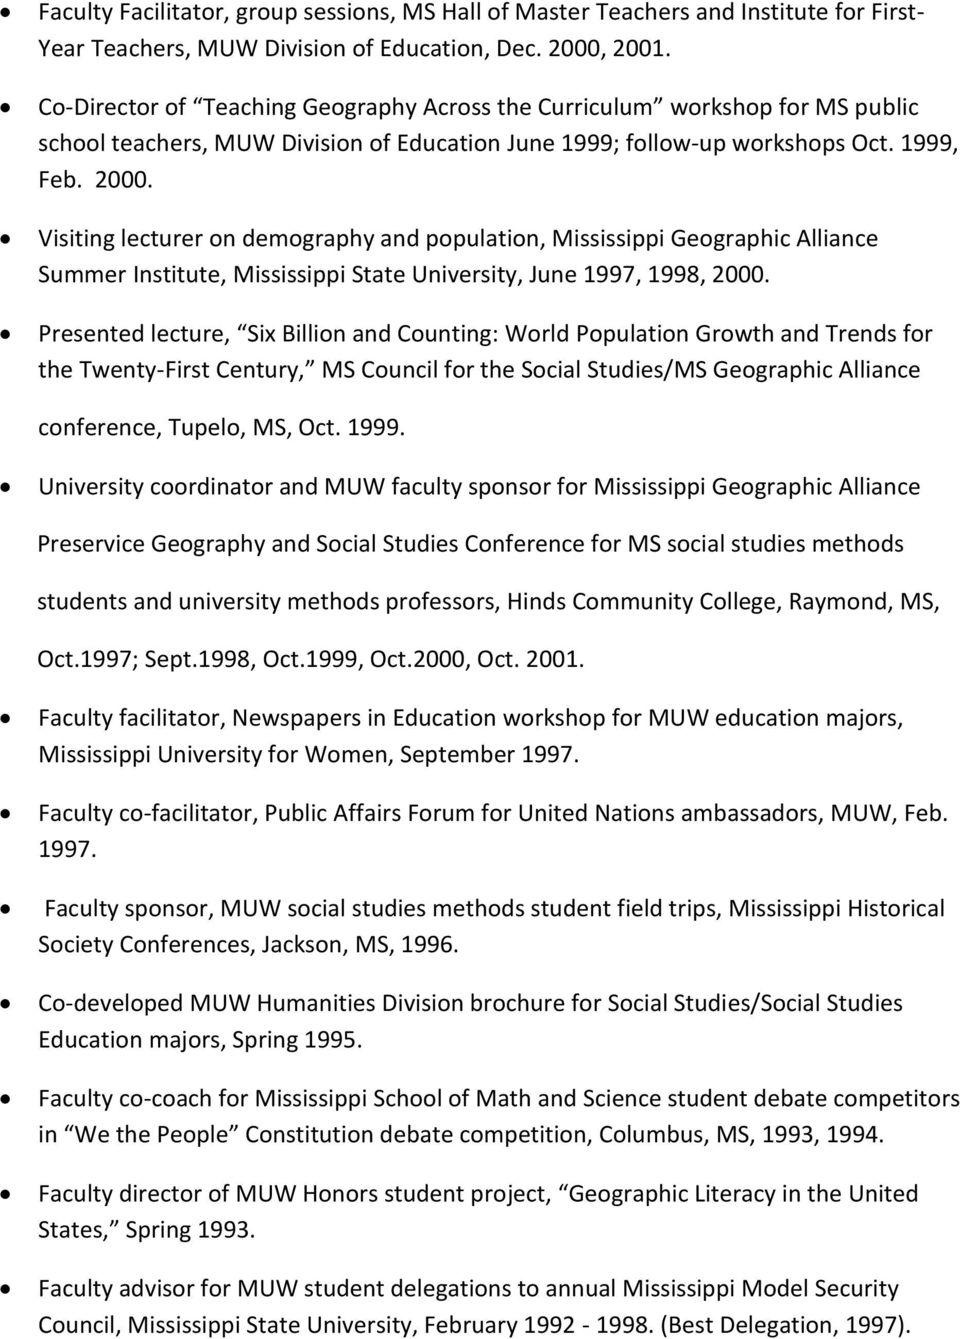 Visiting lecturer on demography and population, Mississippi Geographic Alliance Summer Institute, Mississippi State University, June 1997, 1998, 2000.